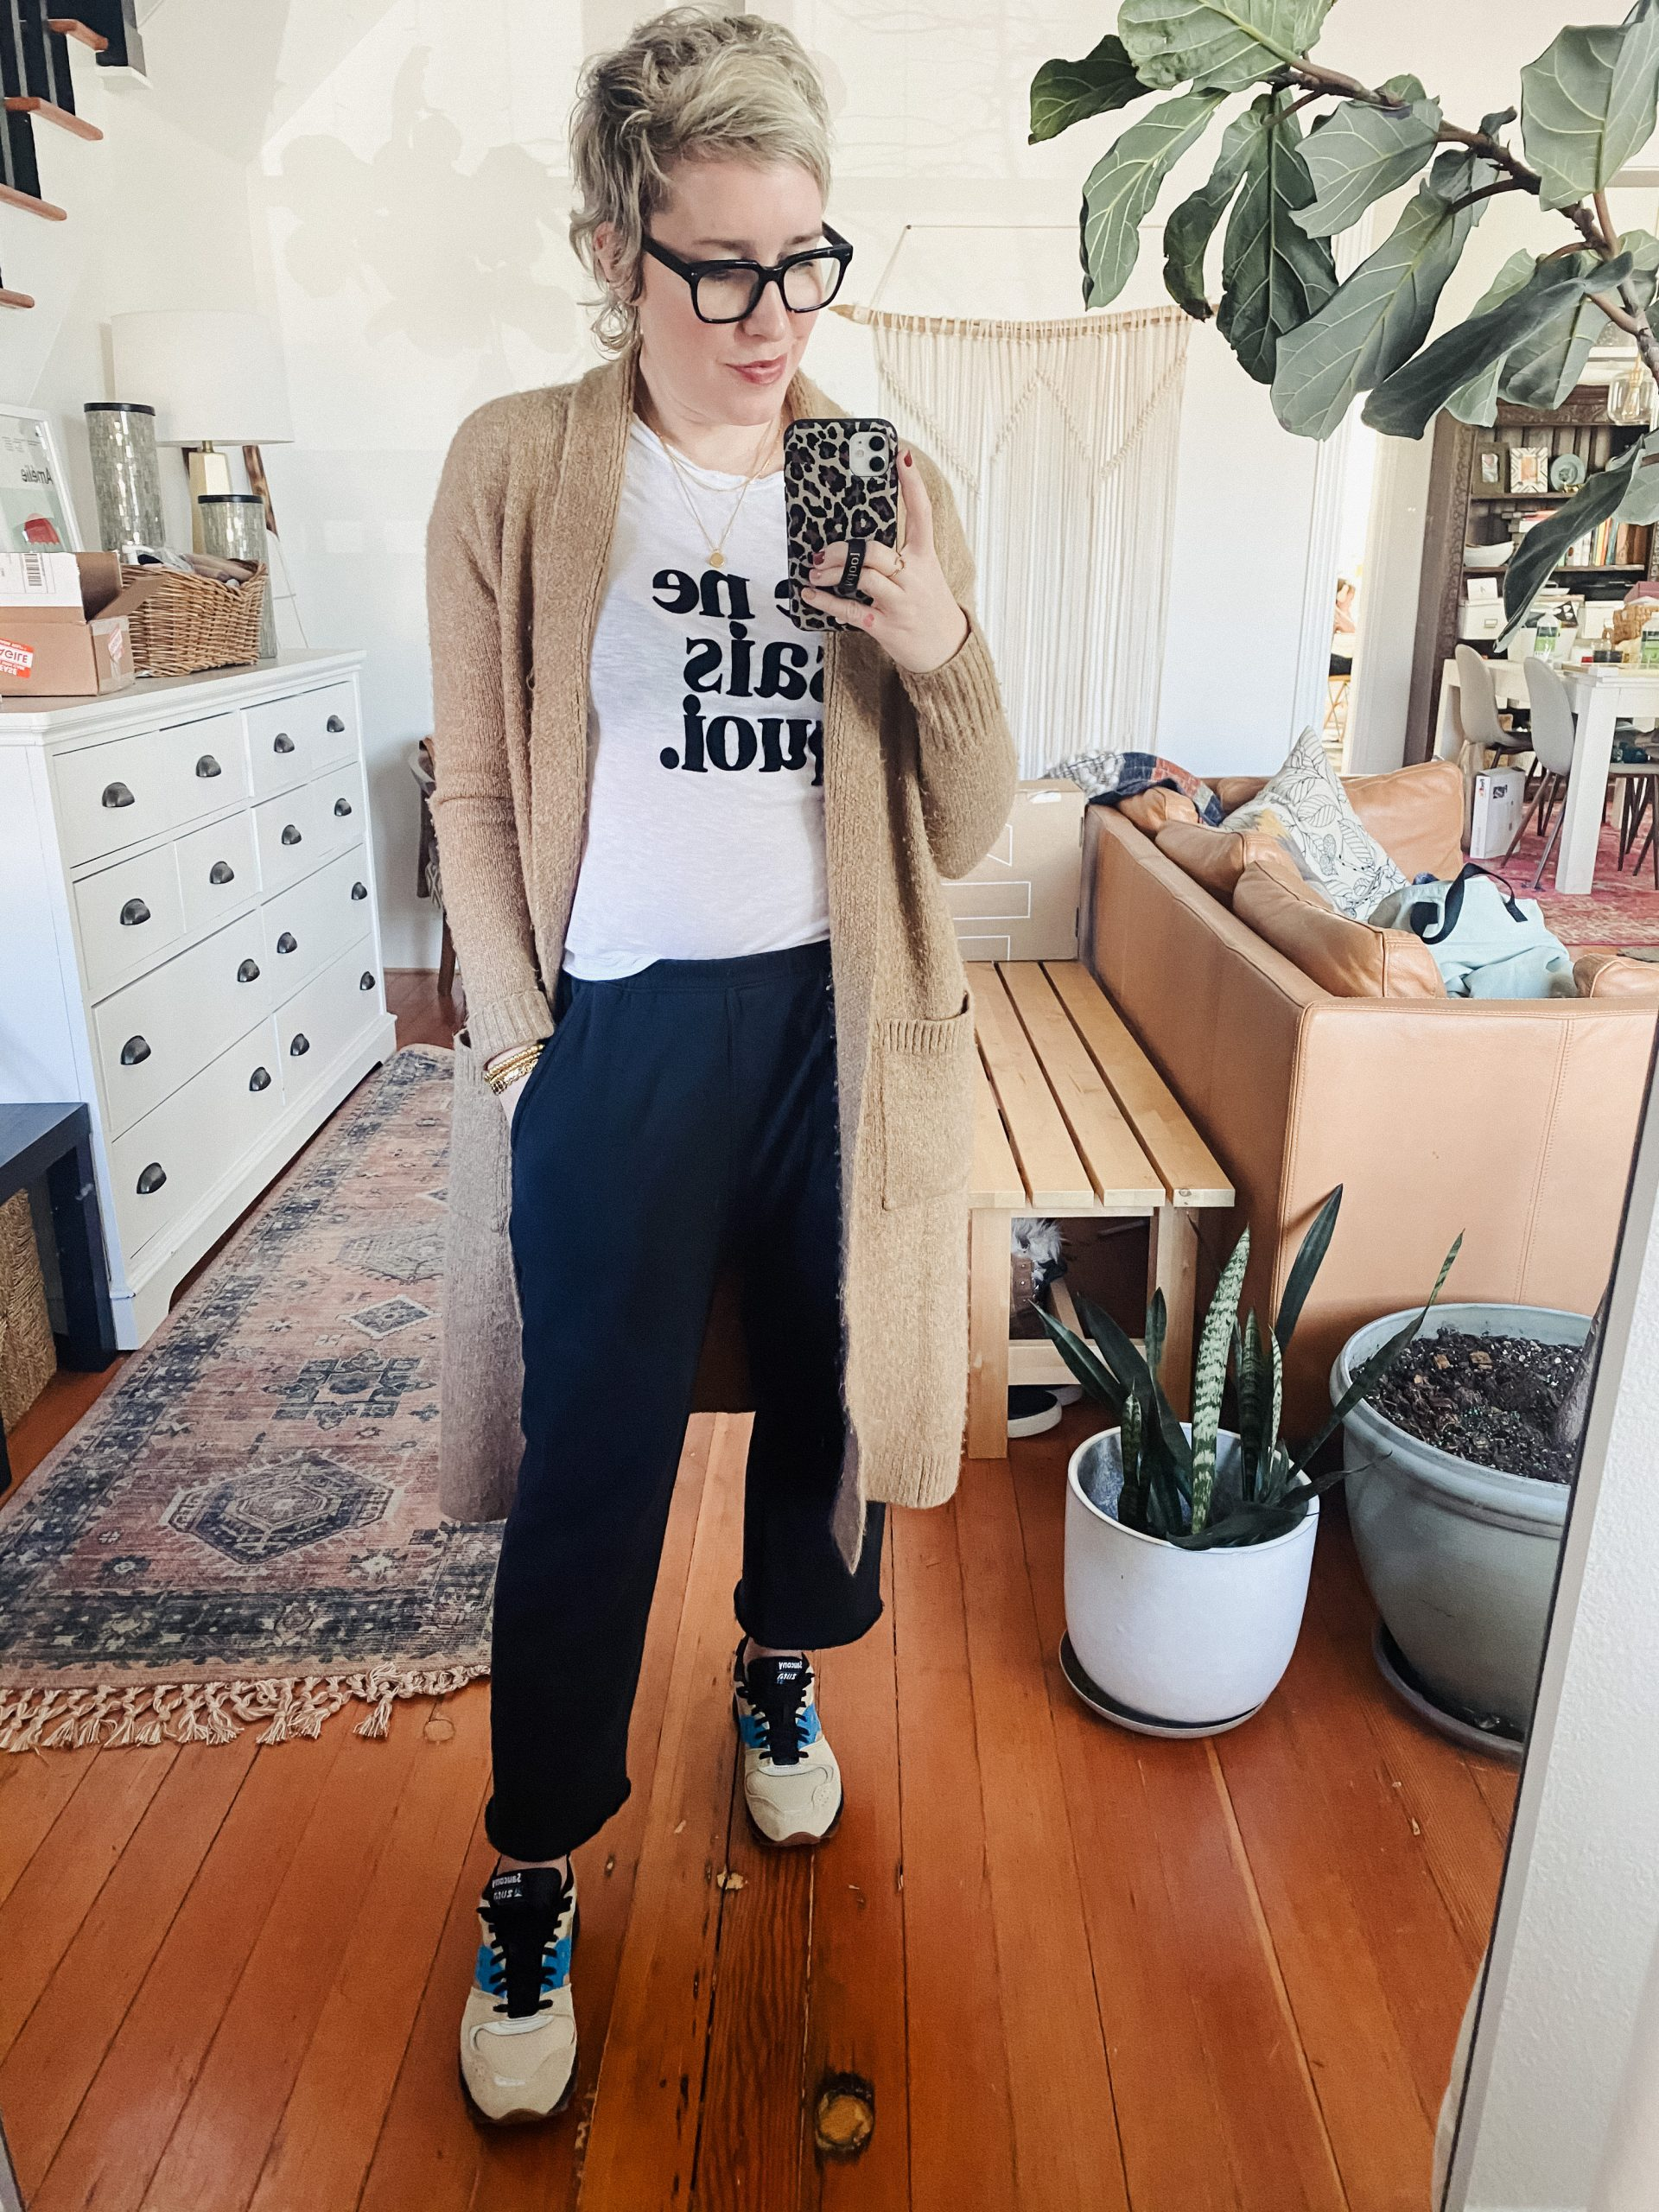 The GREAT. baggy cropped sweatpants have become some of my fav lounge-to-streetwear pants. So I'm here to find out if their loungewear is worth the coin.